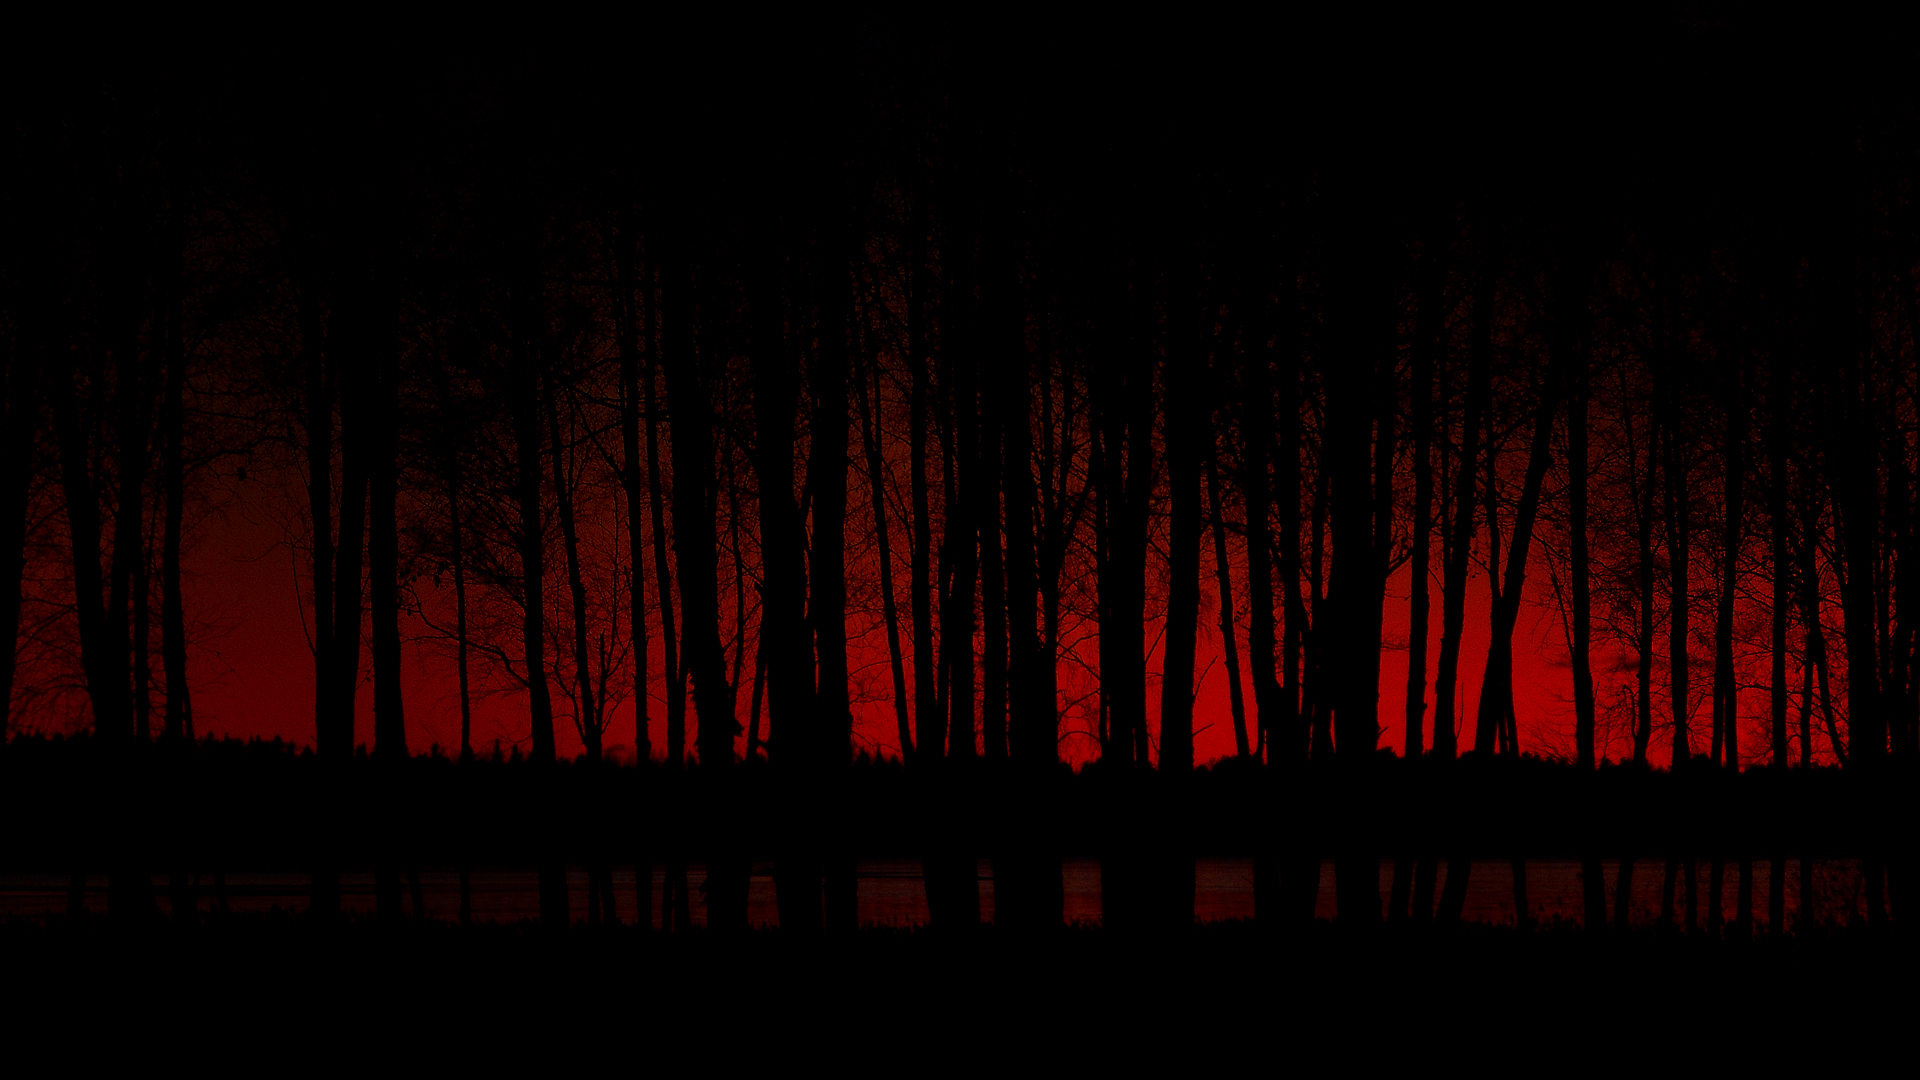 scary dark forest desktop wallpaper 64316 1920x1080px